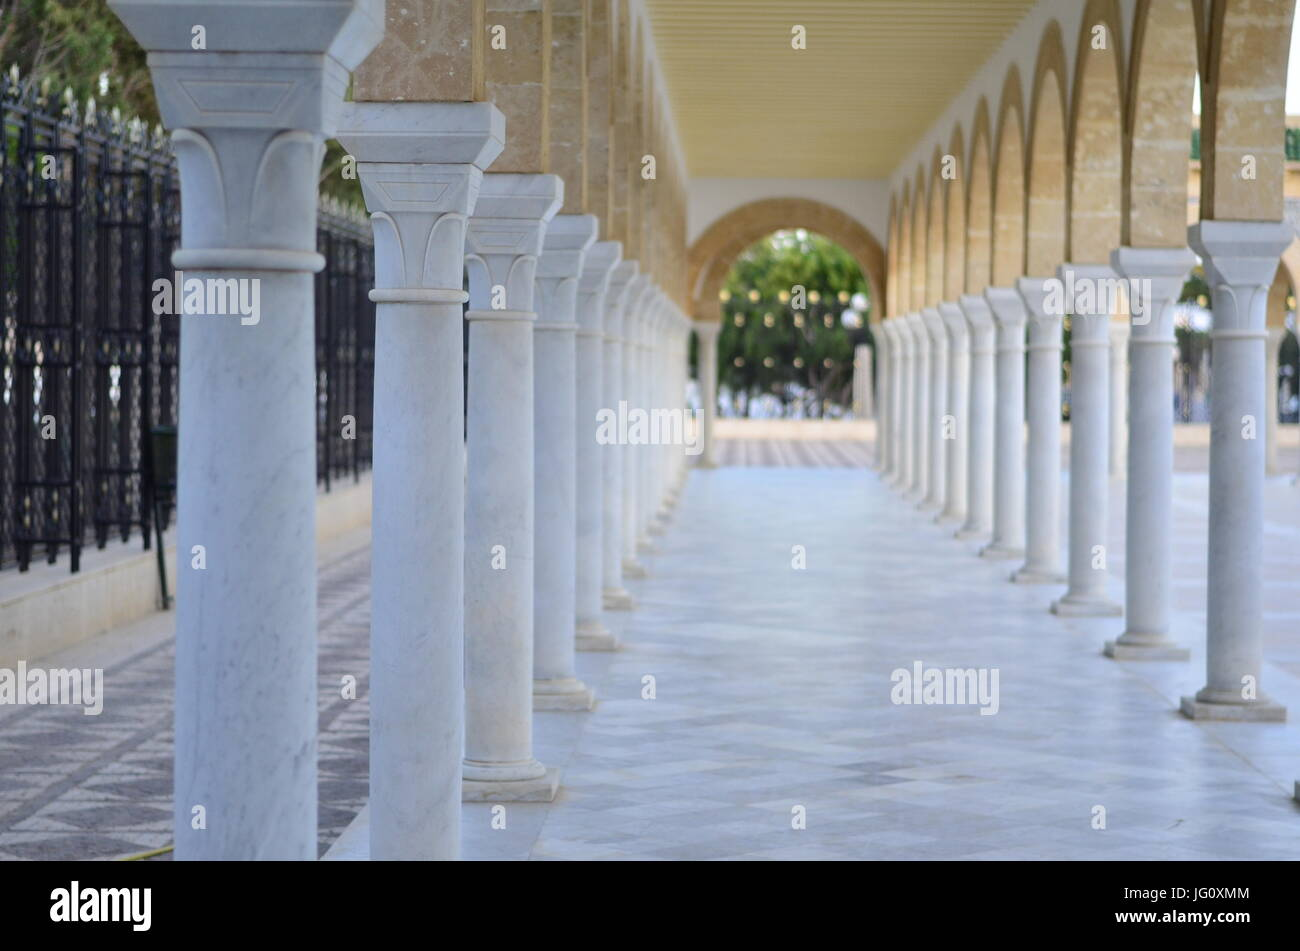 Amazing architecture and alley - Stock Image